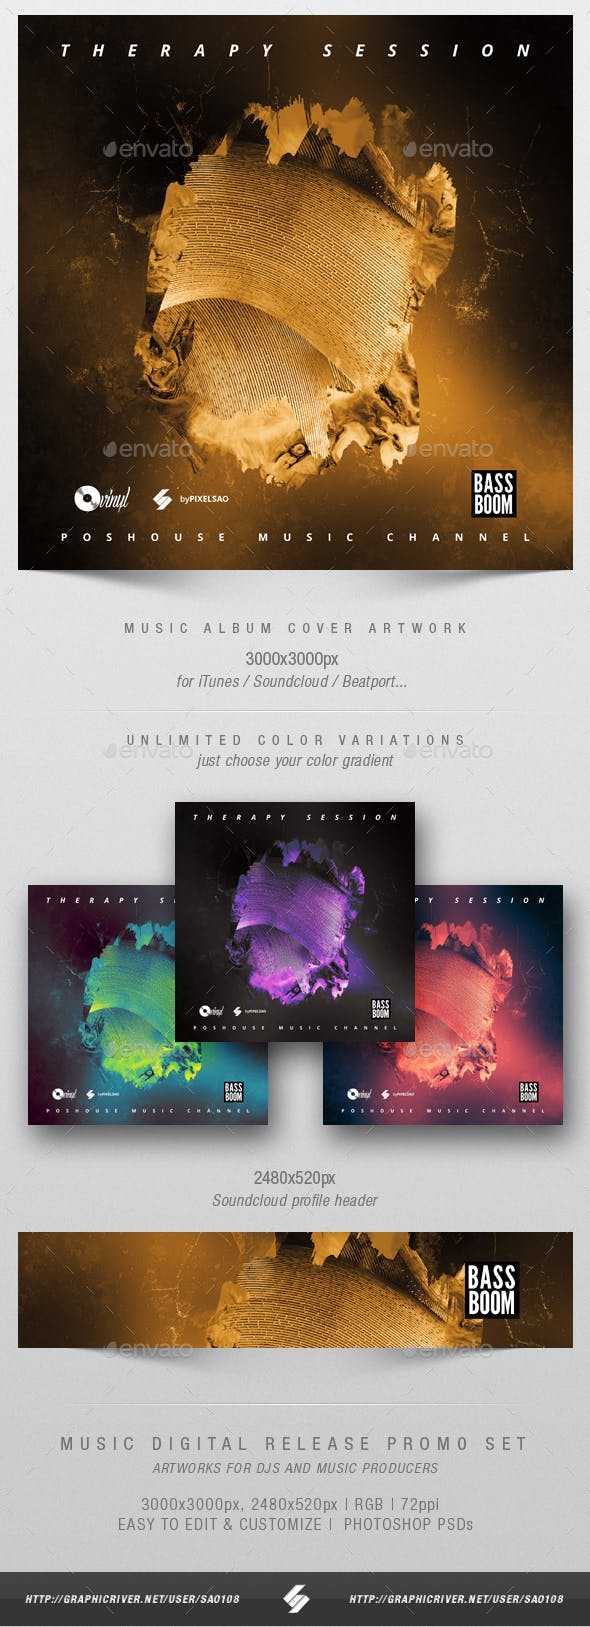 therapy session music album cover artwork template by sao108